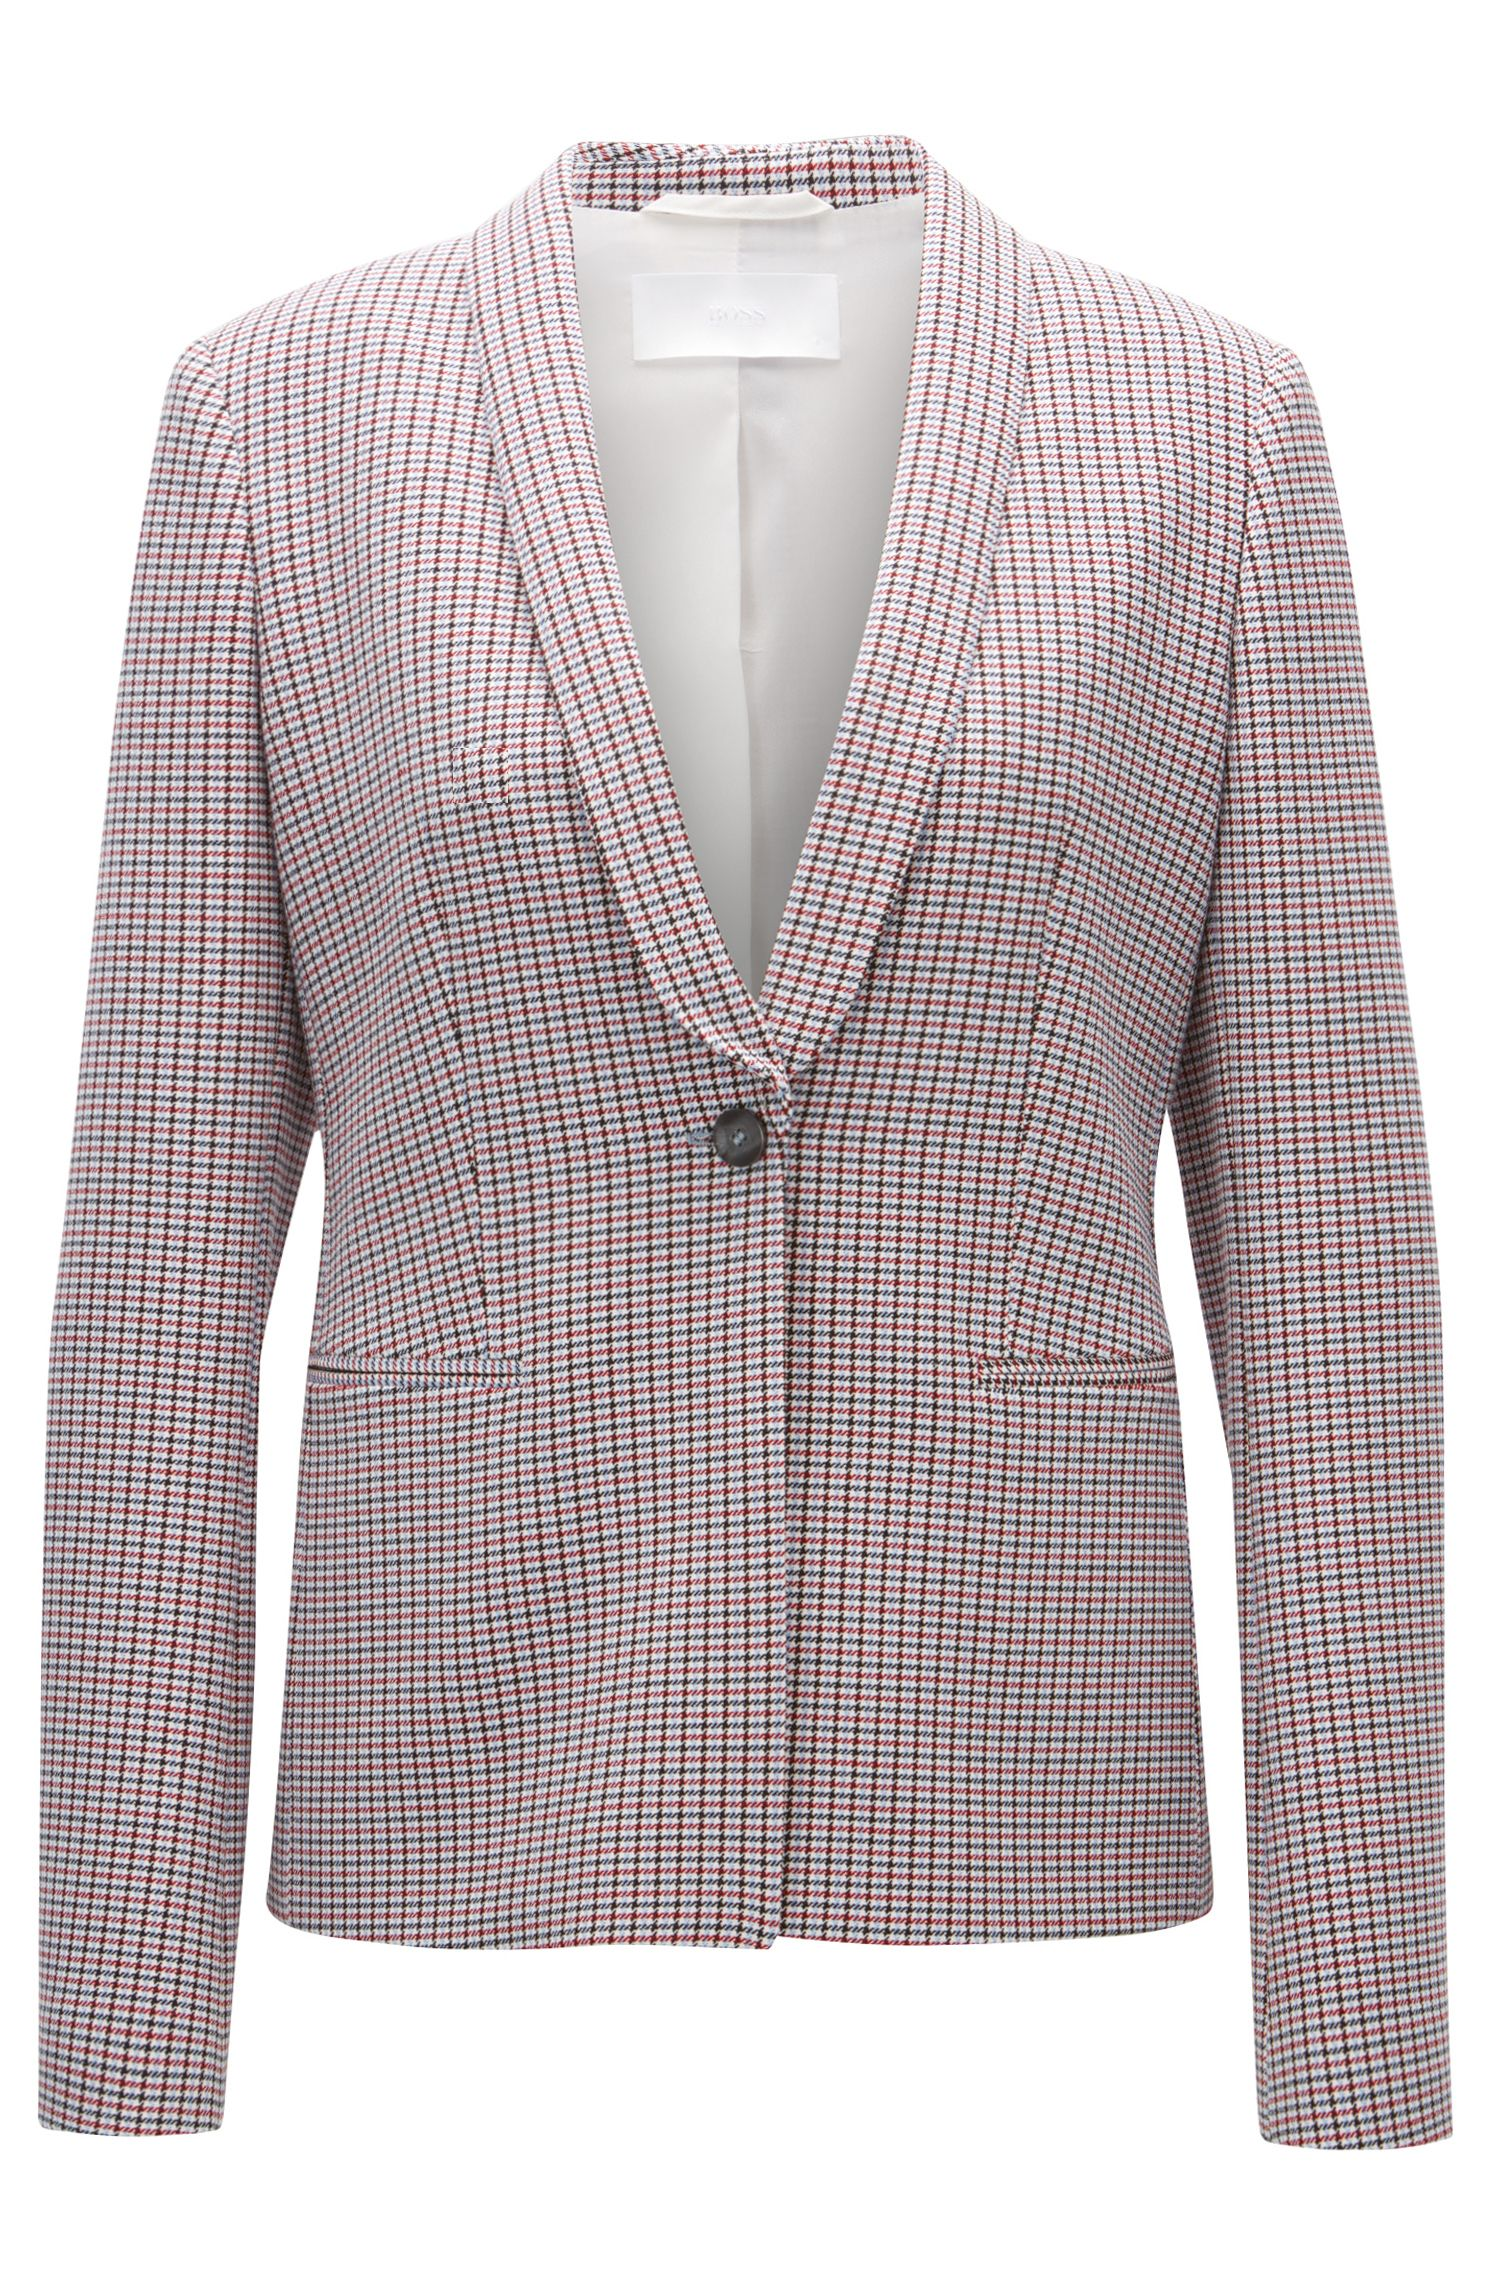 Regular-fit jacket in double-faced fabric